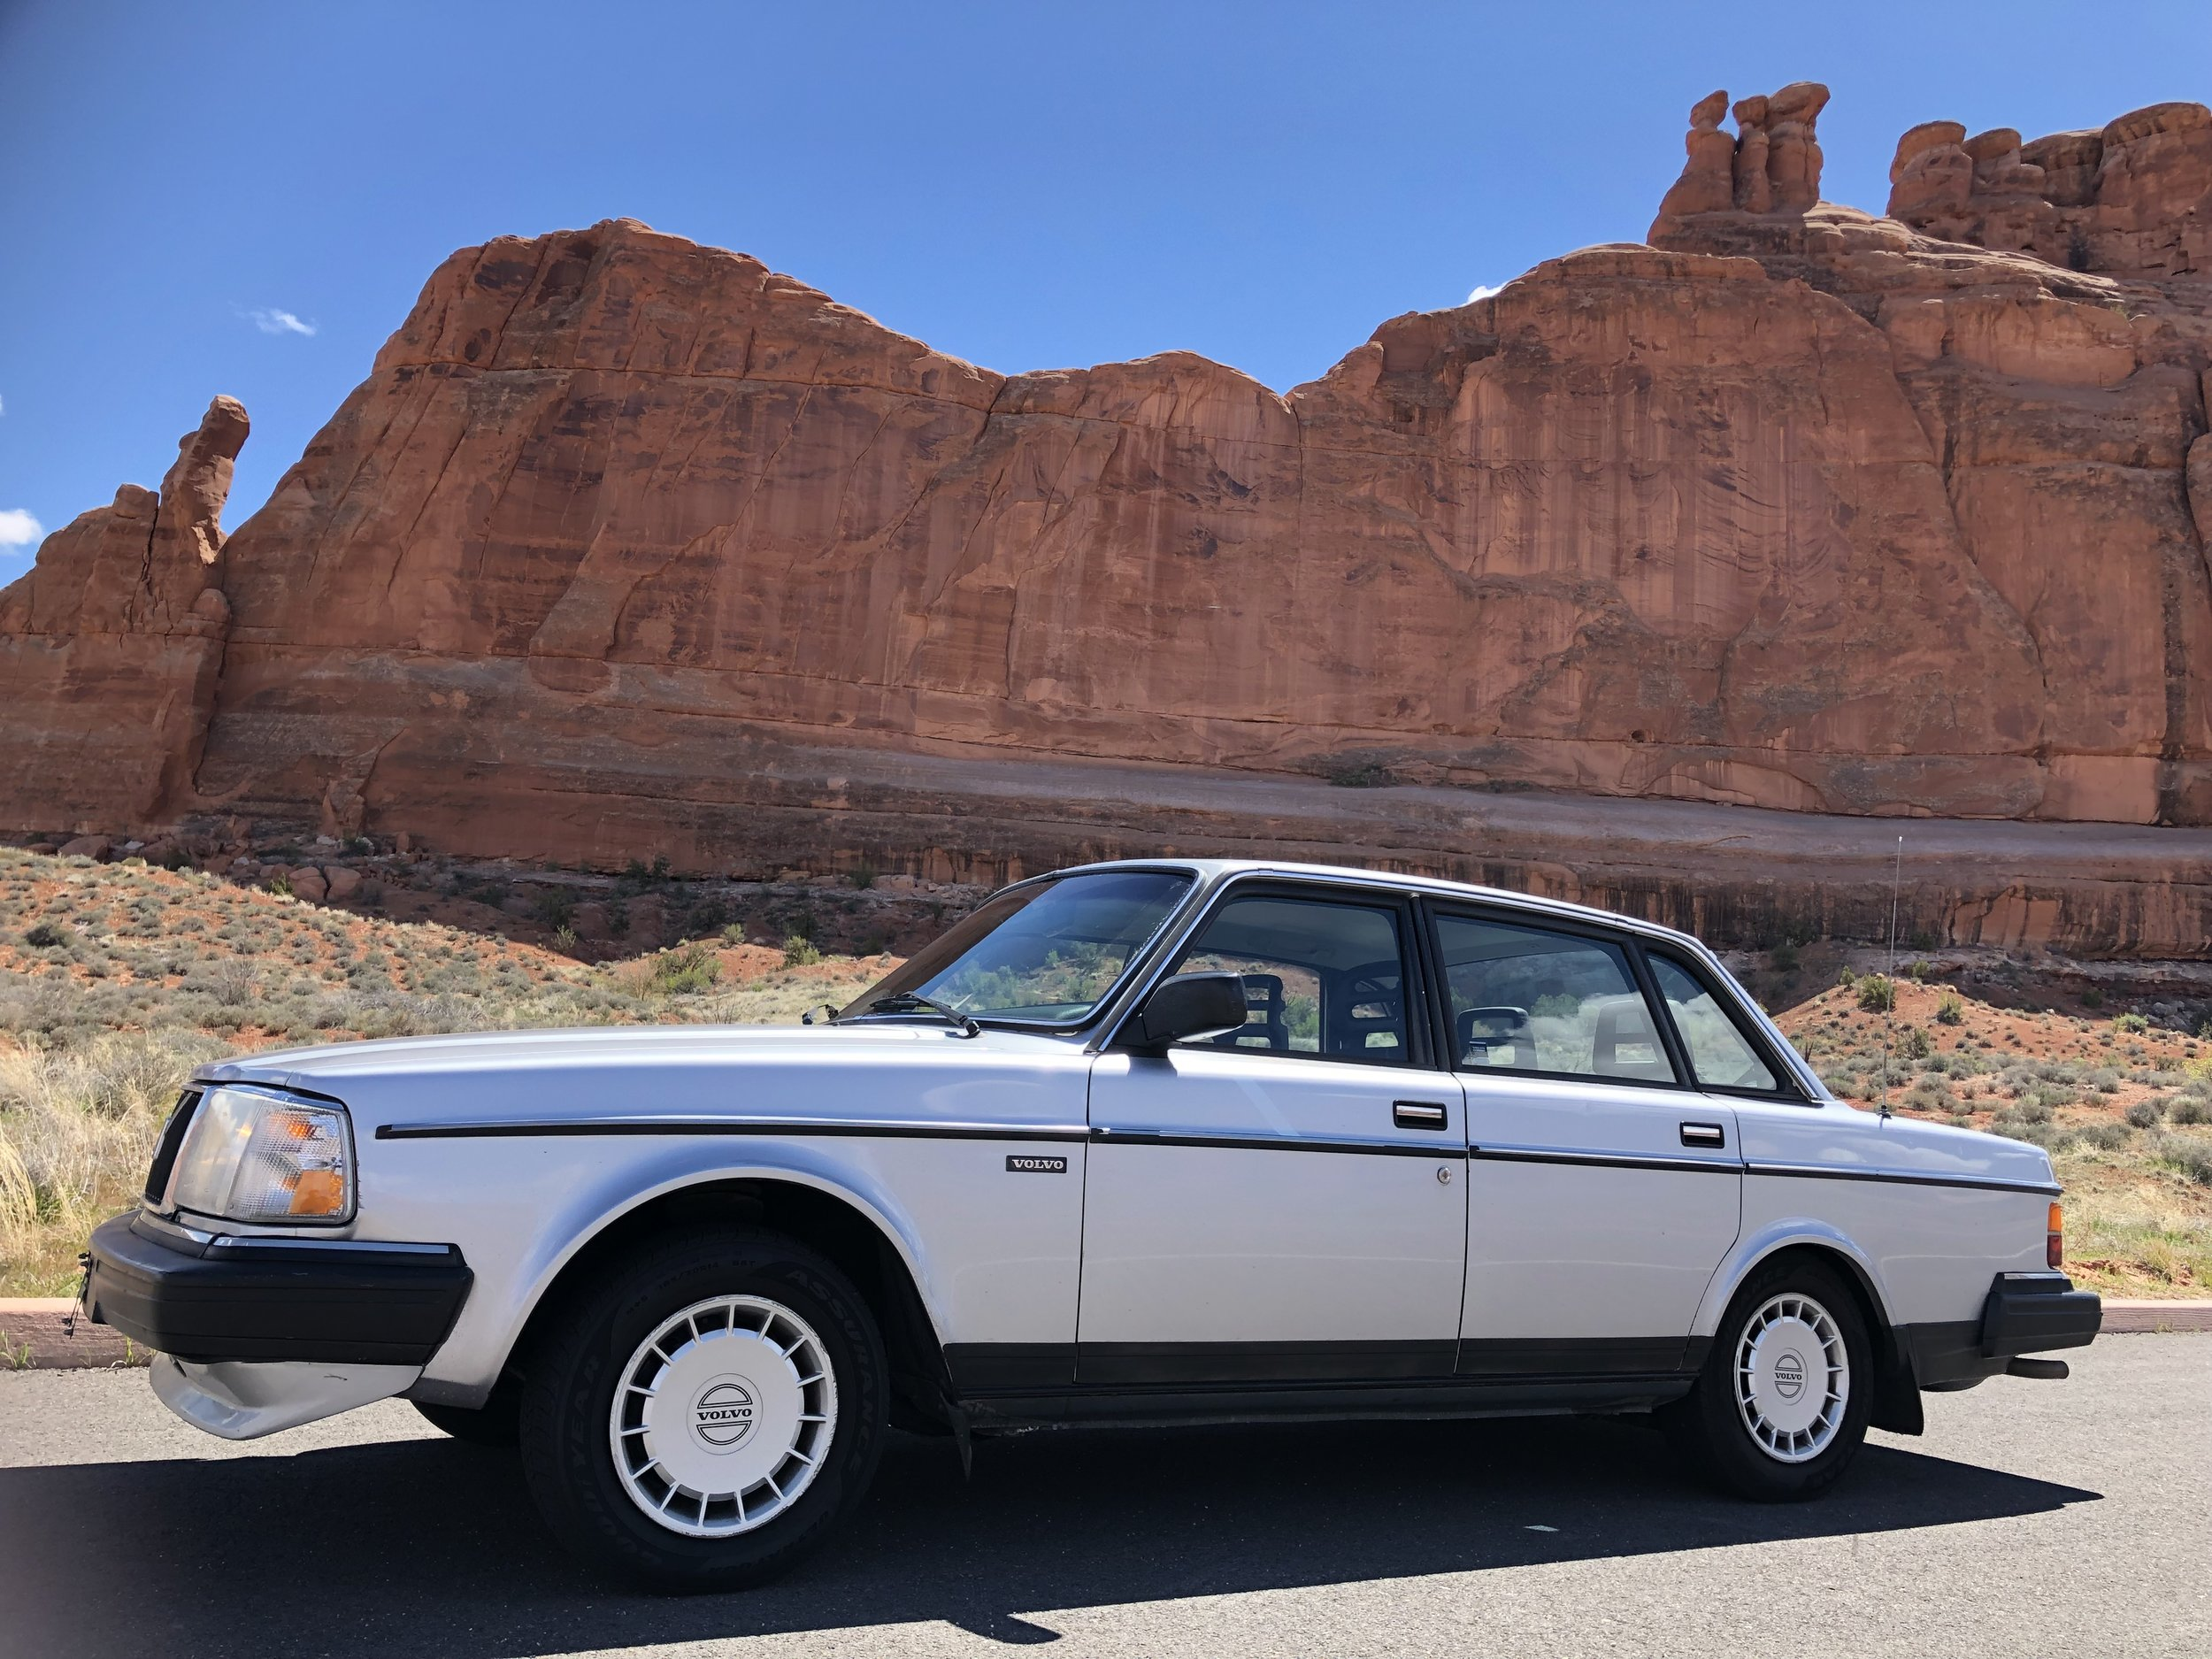 Babs - '89 Volvo 240 - DEPOSIT RECEIVED - ON HOLD